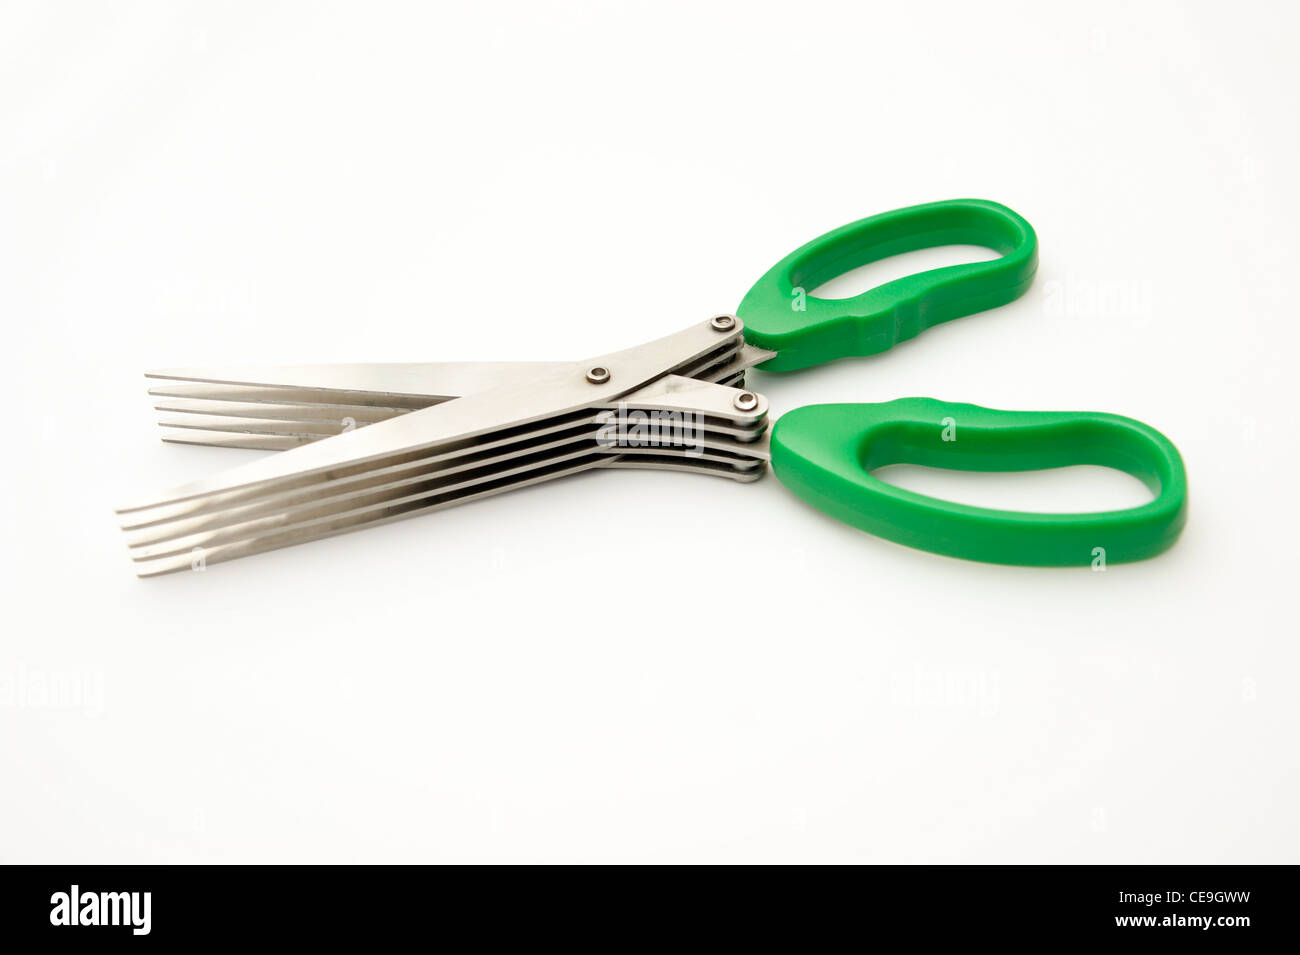 5 blade shredder scissors for shredding personal information / documents to stop fraud & identity theft - Stock Image